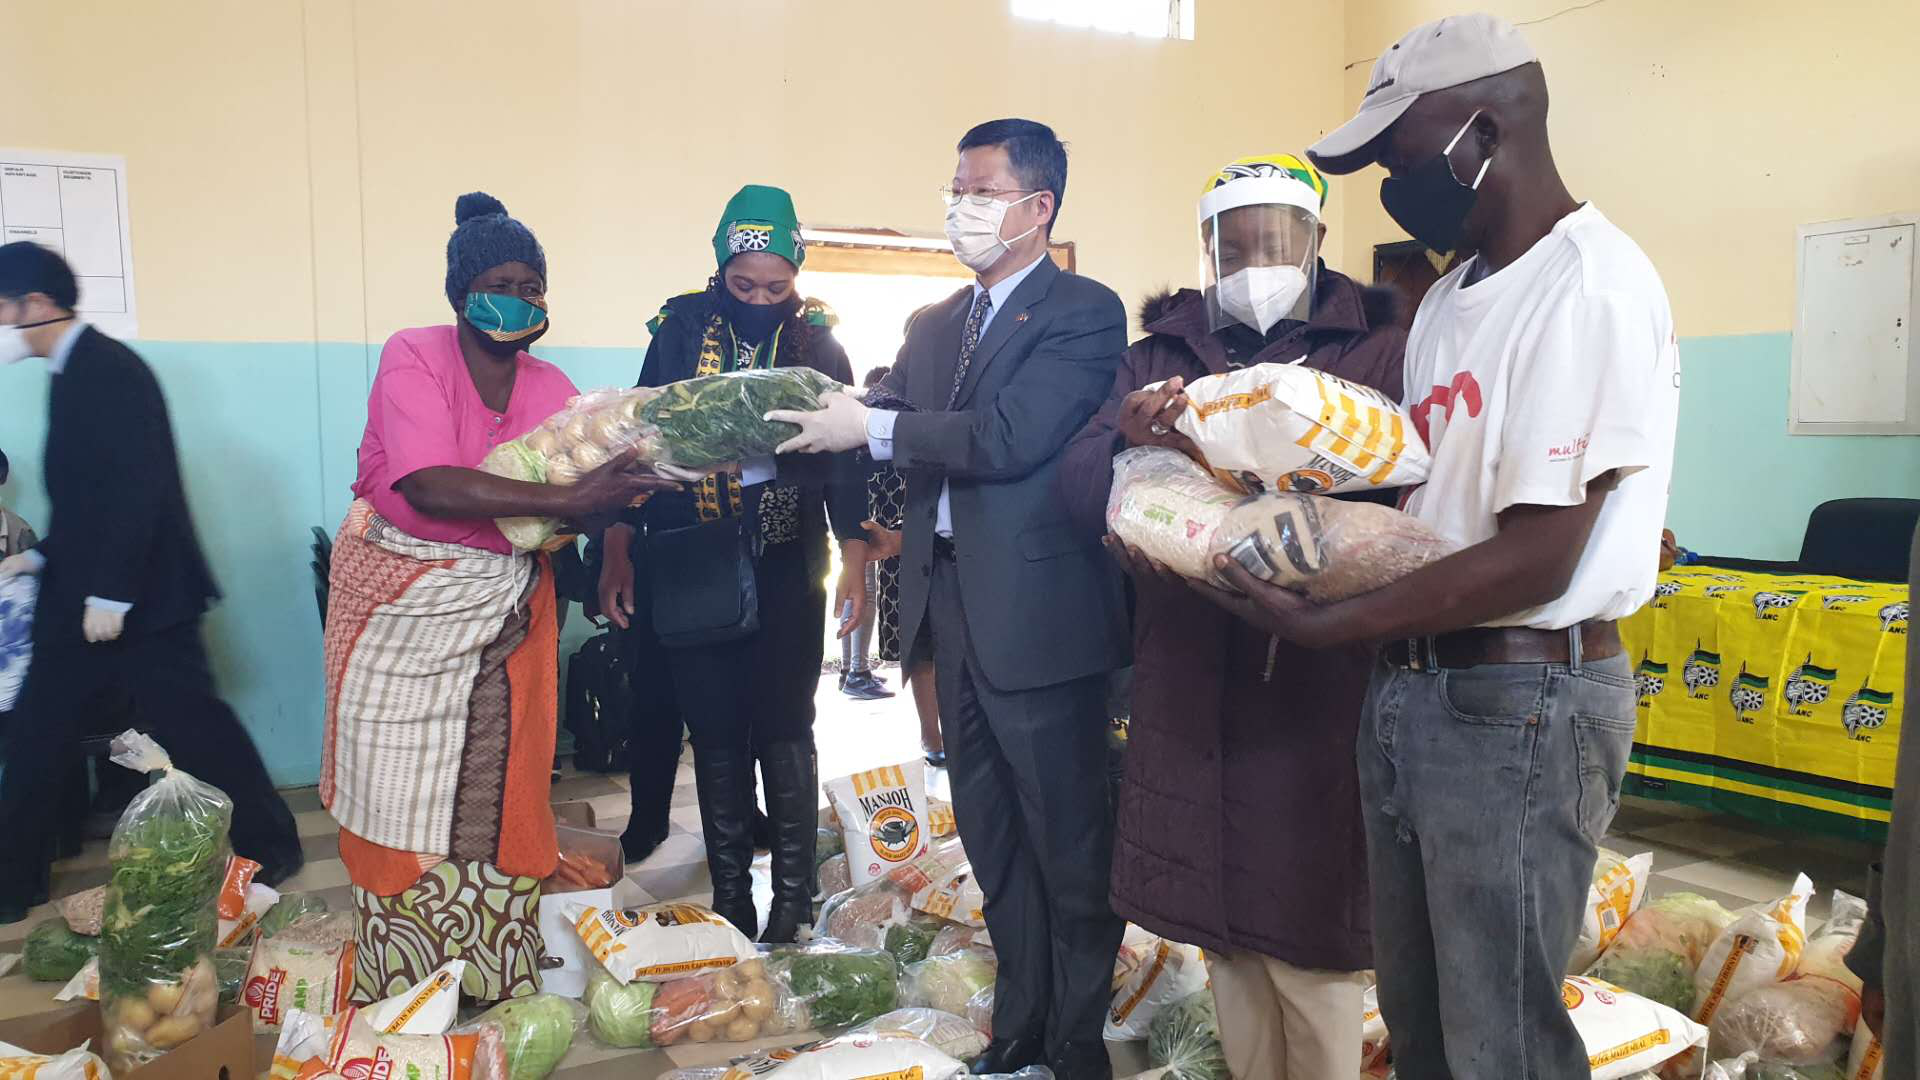 Chinese embassy distributes food parcels, masks to aid anti-virus fight in S. Africa